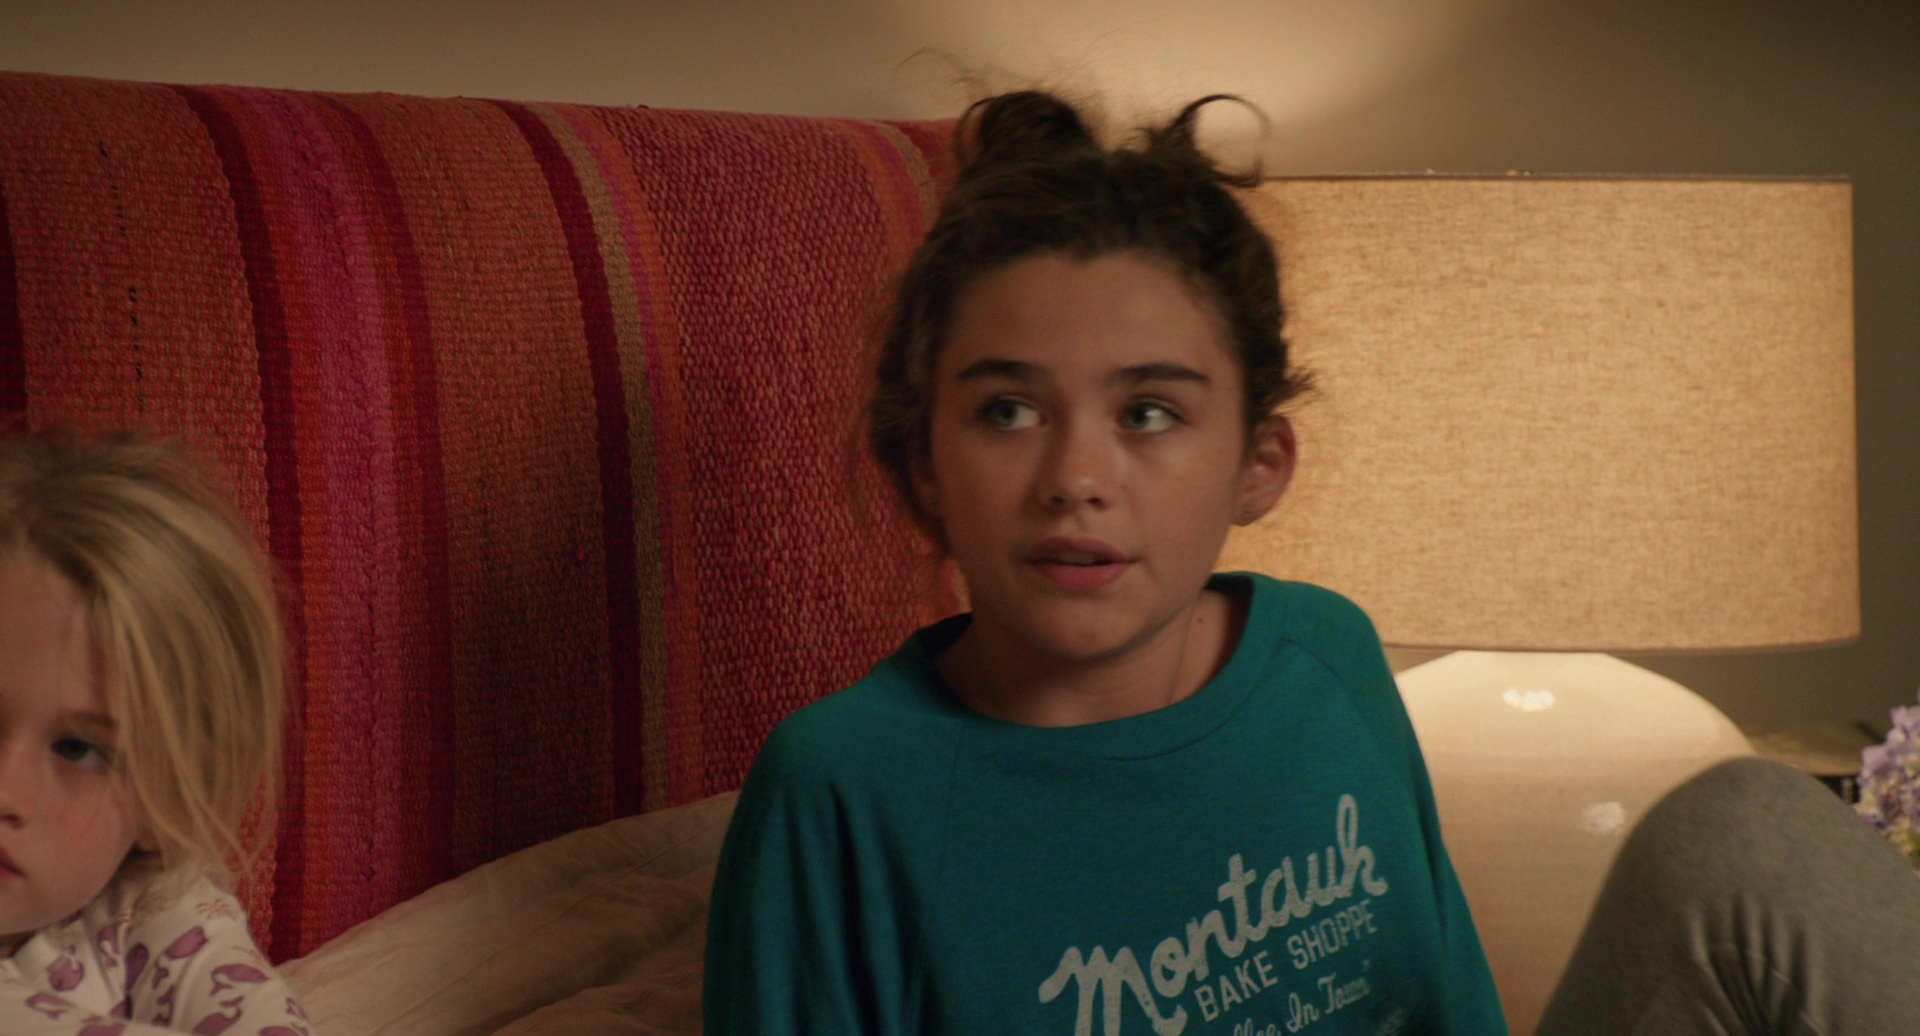 Montauk Bake Shoppe Sweatshirt Worn By Lola Flanery In Home Again 2017 Movie - Lola Home